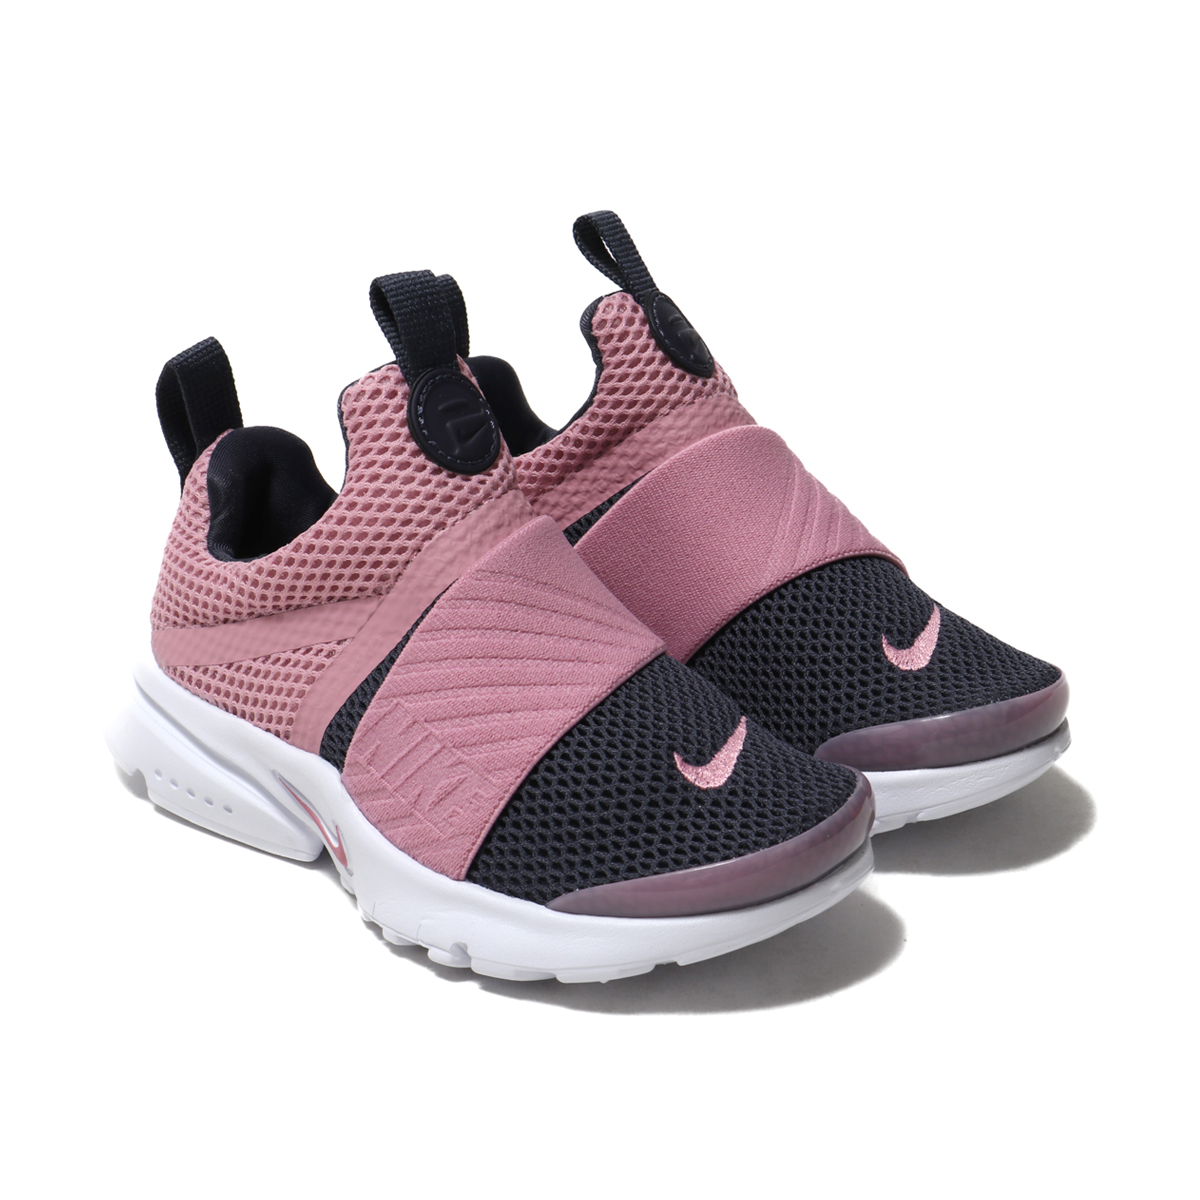 purchase cheap 82a74 0f835 In the Nike presto extreme PS to perform flashback in 2000, booties  structure of the mesh is a feature. I realize a feeling of such as socks  fitting and a ...